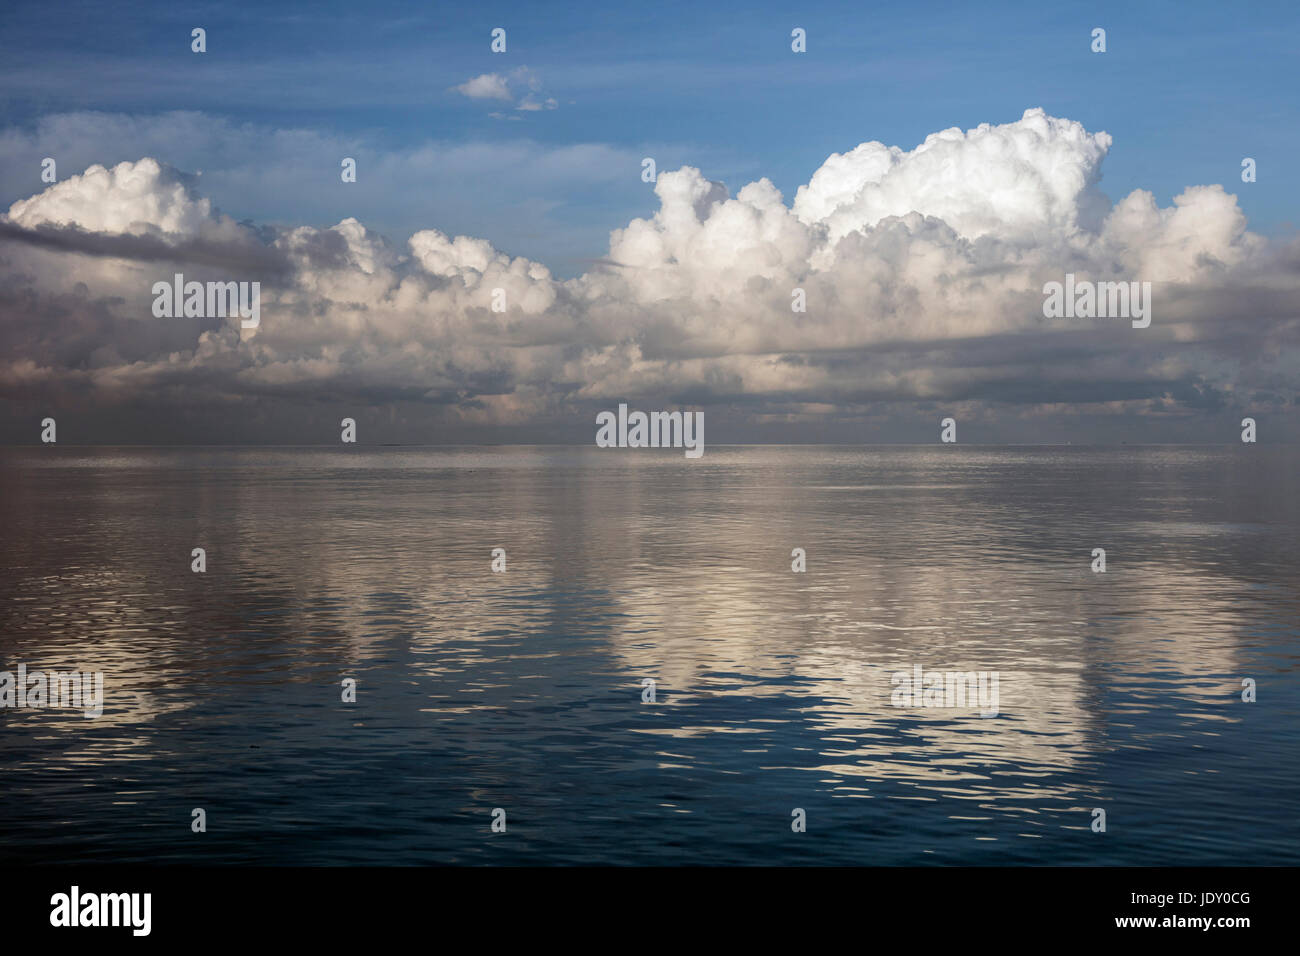 Clouds over Ocean, Wakatobi, Celebes, Indonesia - Stock Image